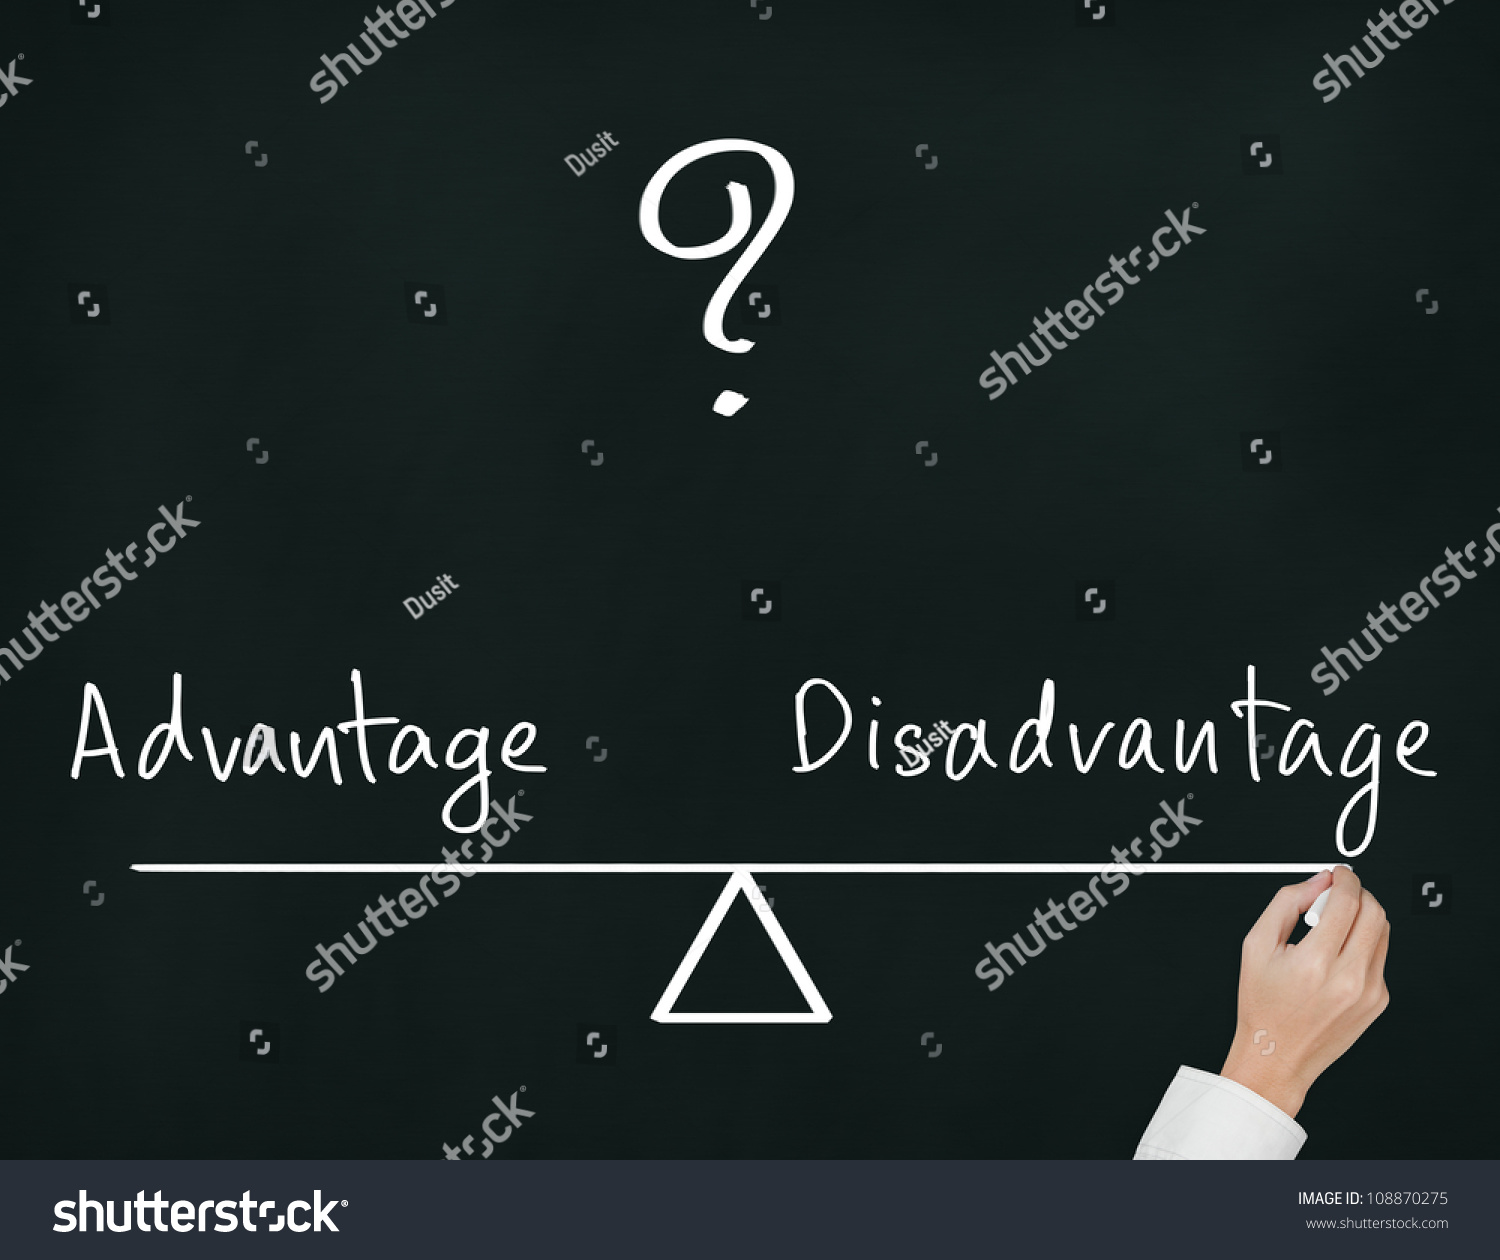 advantage and disadvantage of image editor Each format has its own unique advantages and disadvantages, which must be   a powerpoint™ slide or by saving it as a file using an image editing software.